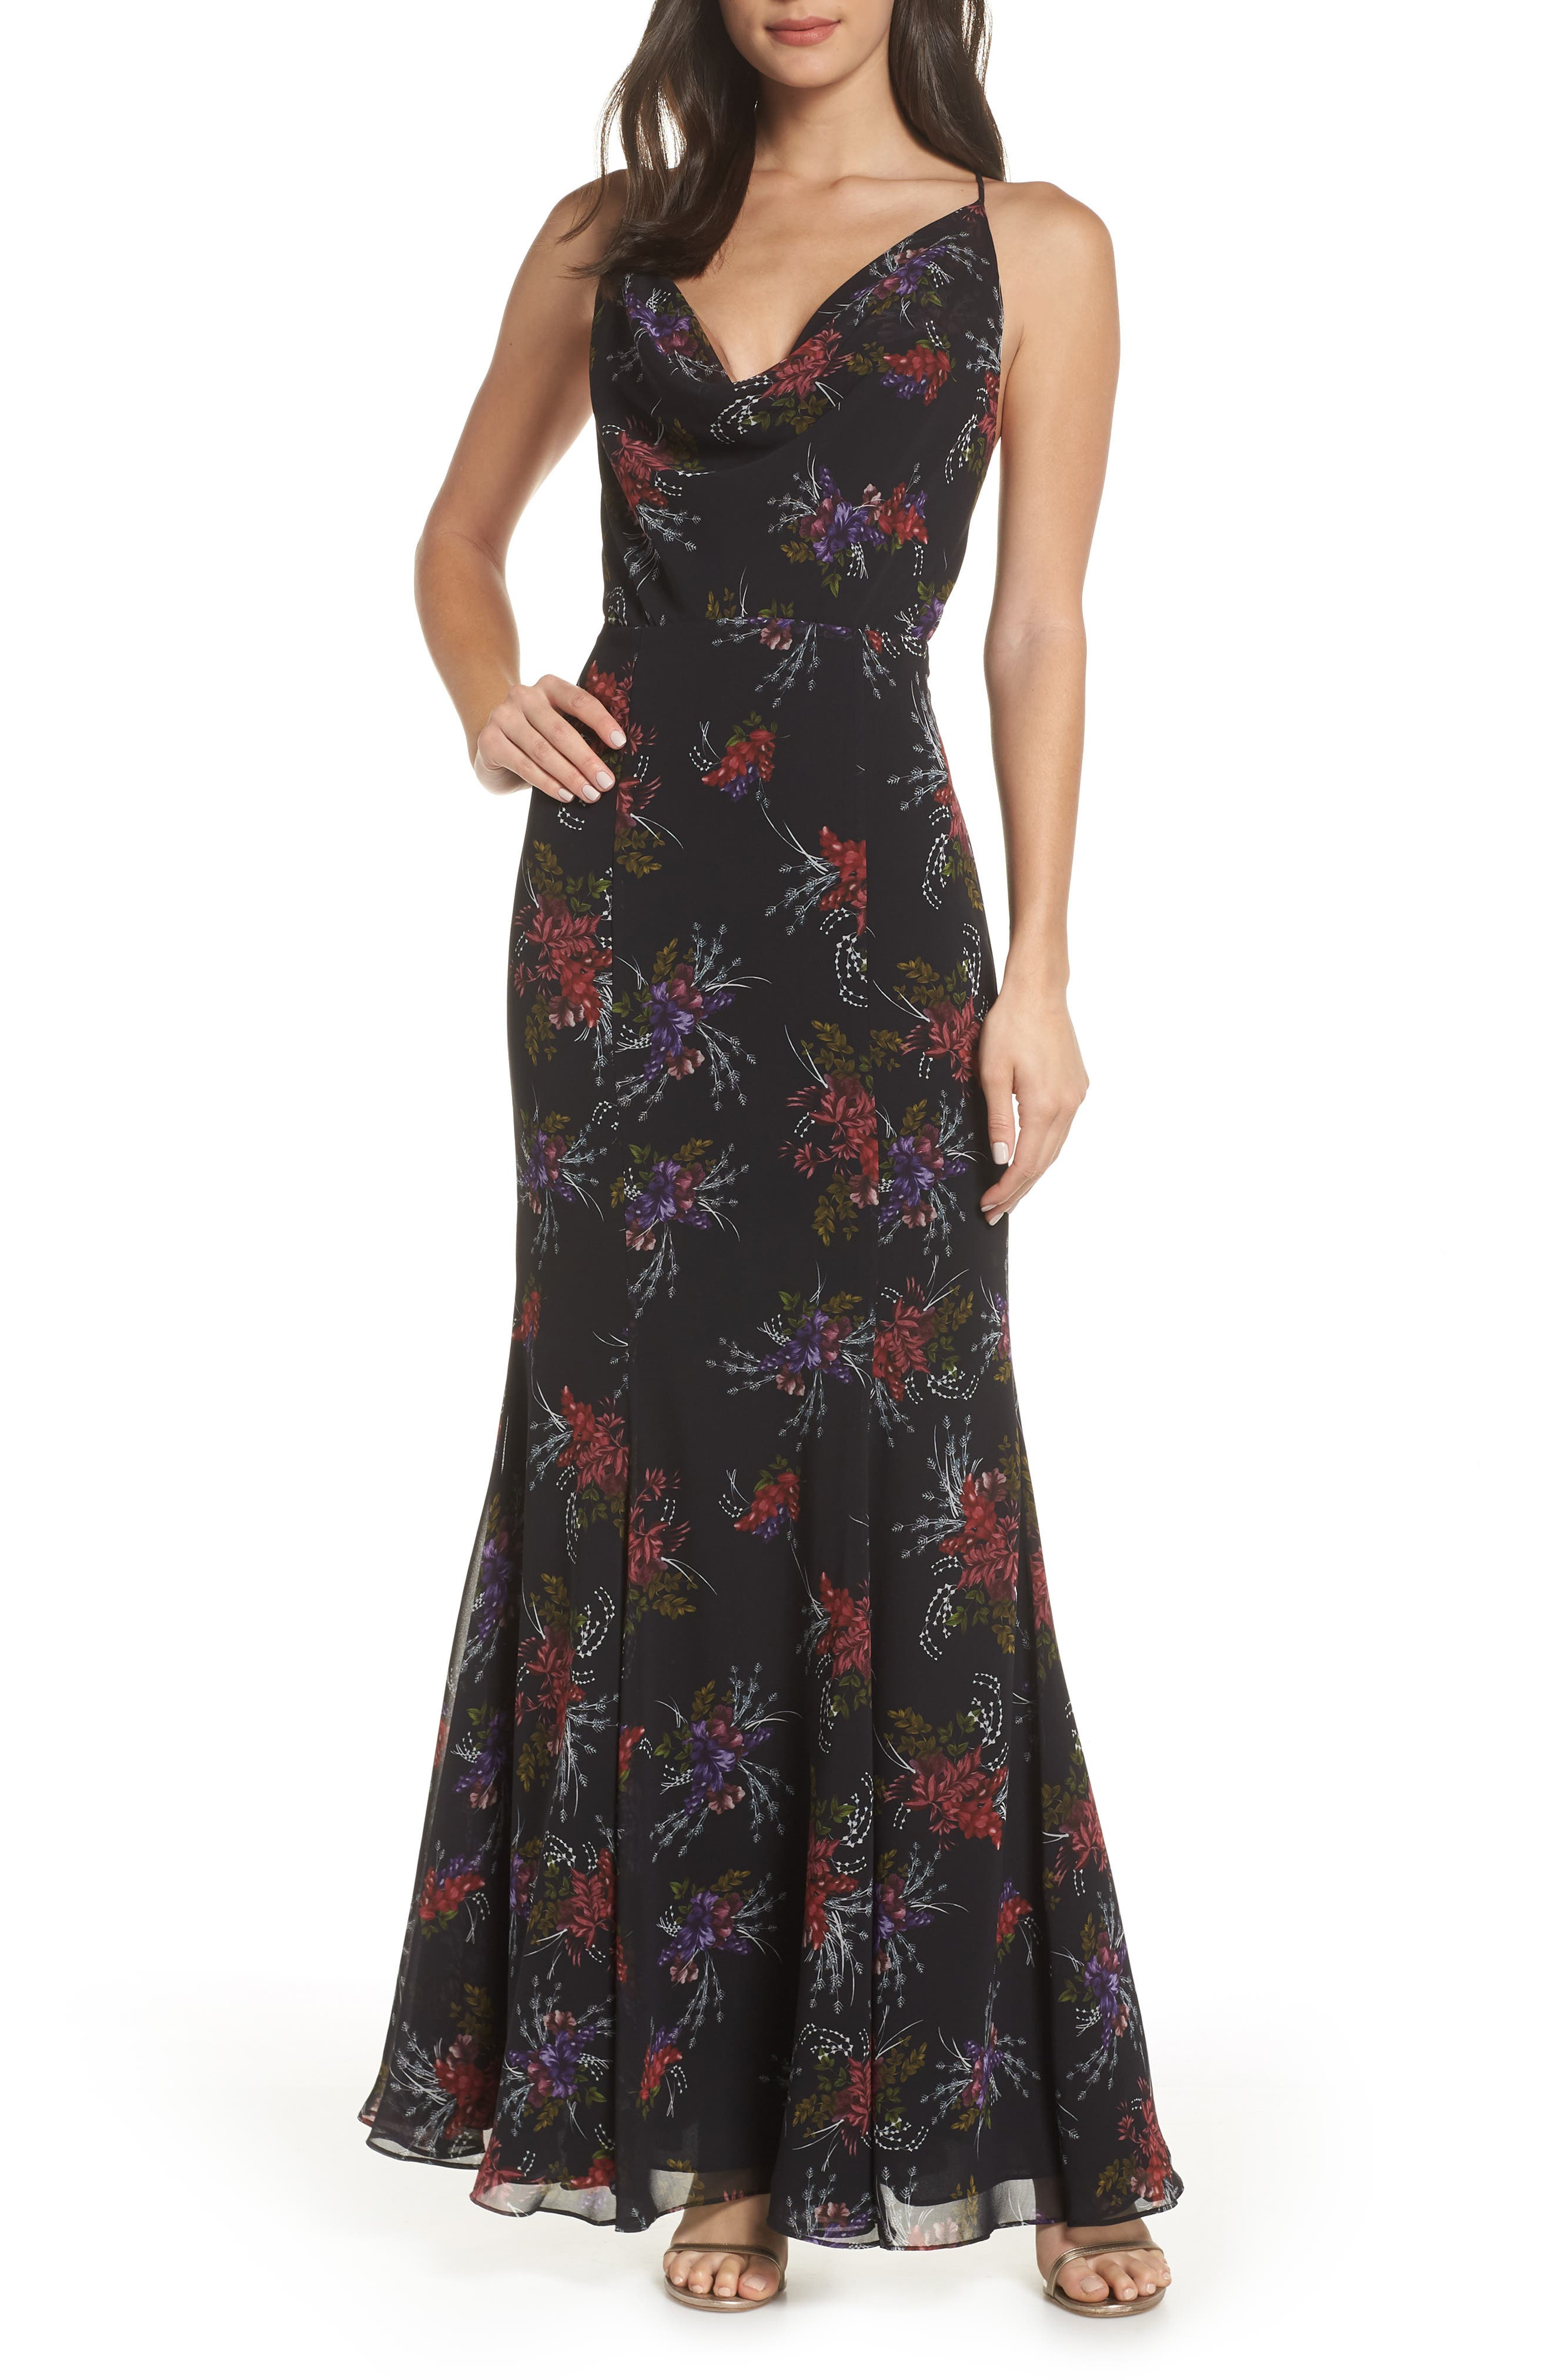 FAME AND PARTNERS The Theodora Floral Print Gown in Olivia Floral